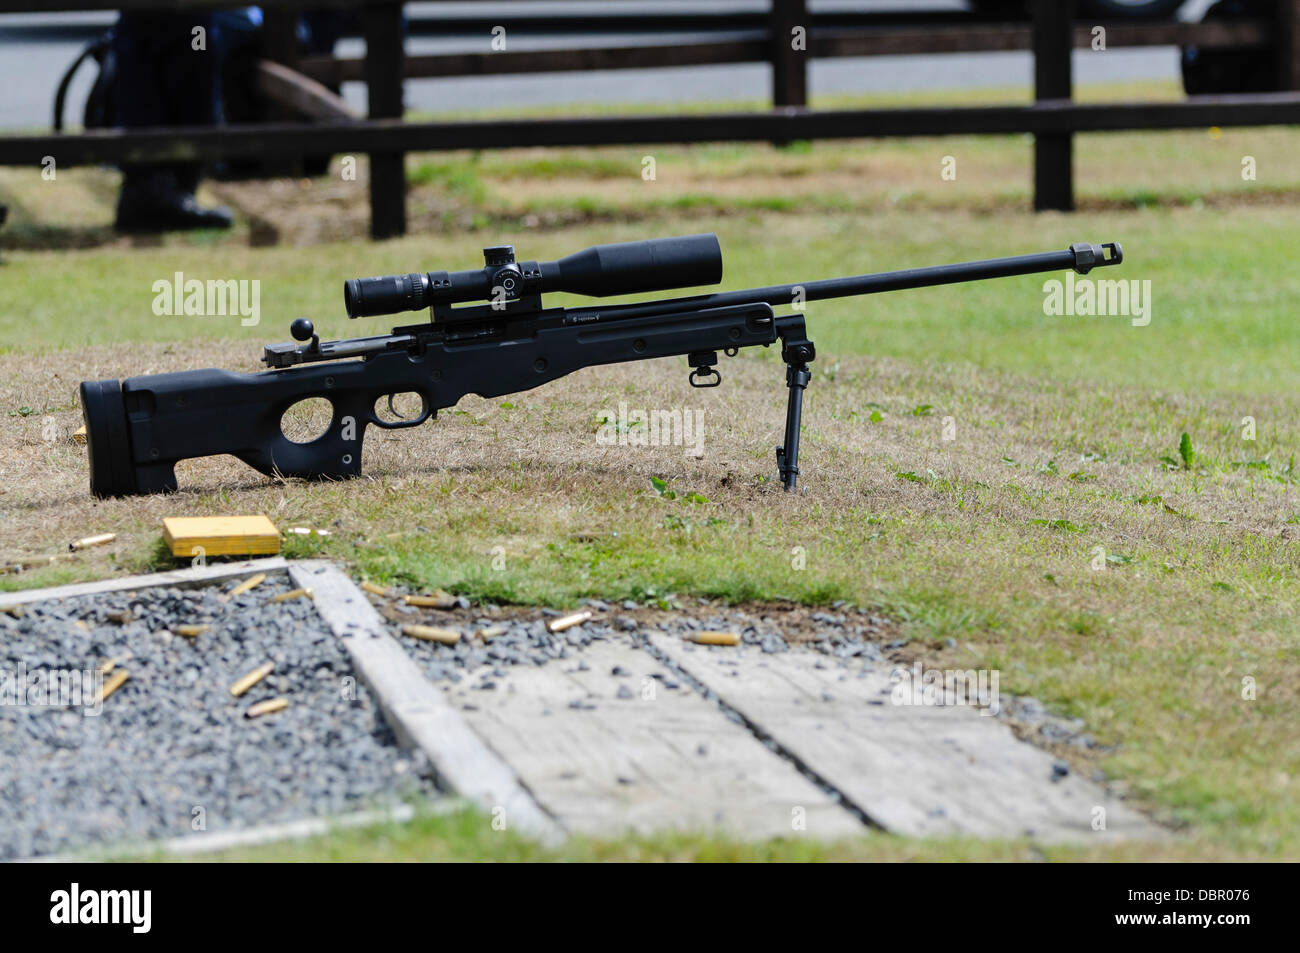 Ballykinlar, Northern Ireland. 2nd August 2013 - A Remington 700 sniper rifle on the firing range Credit:  Stephen - Stock Image